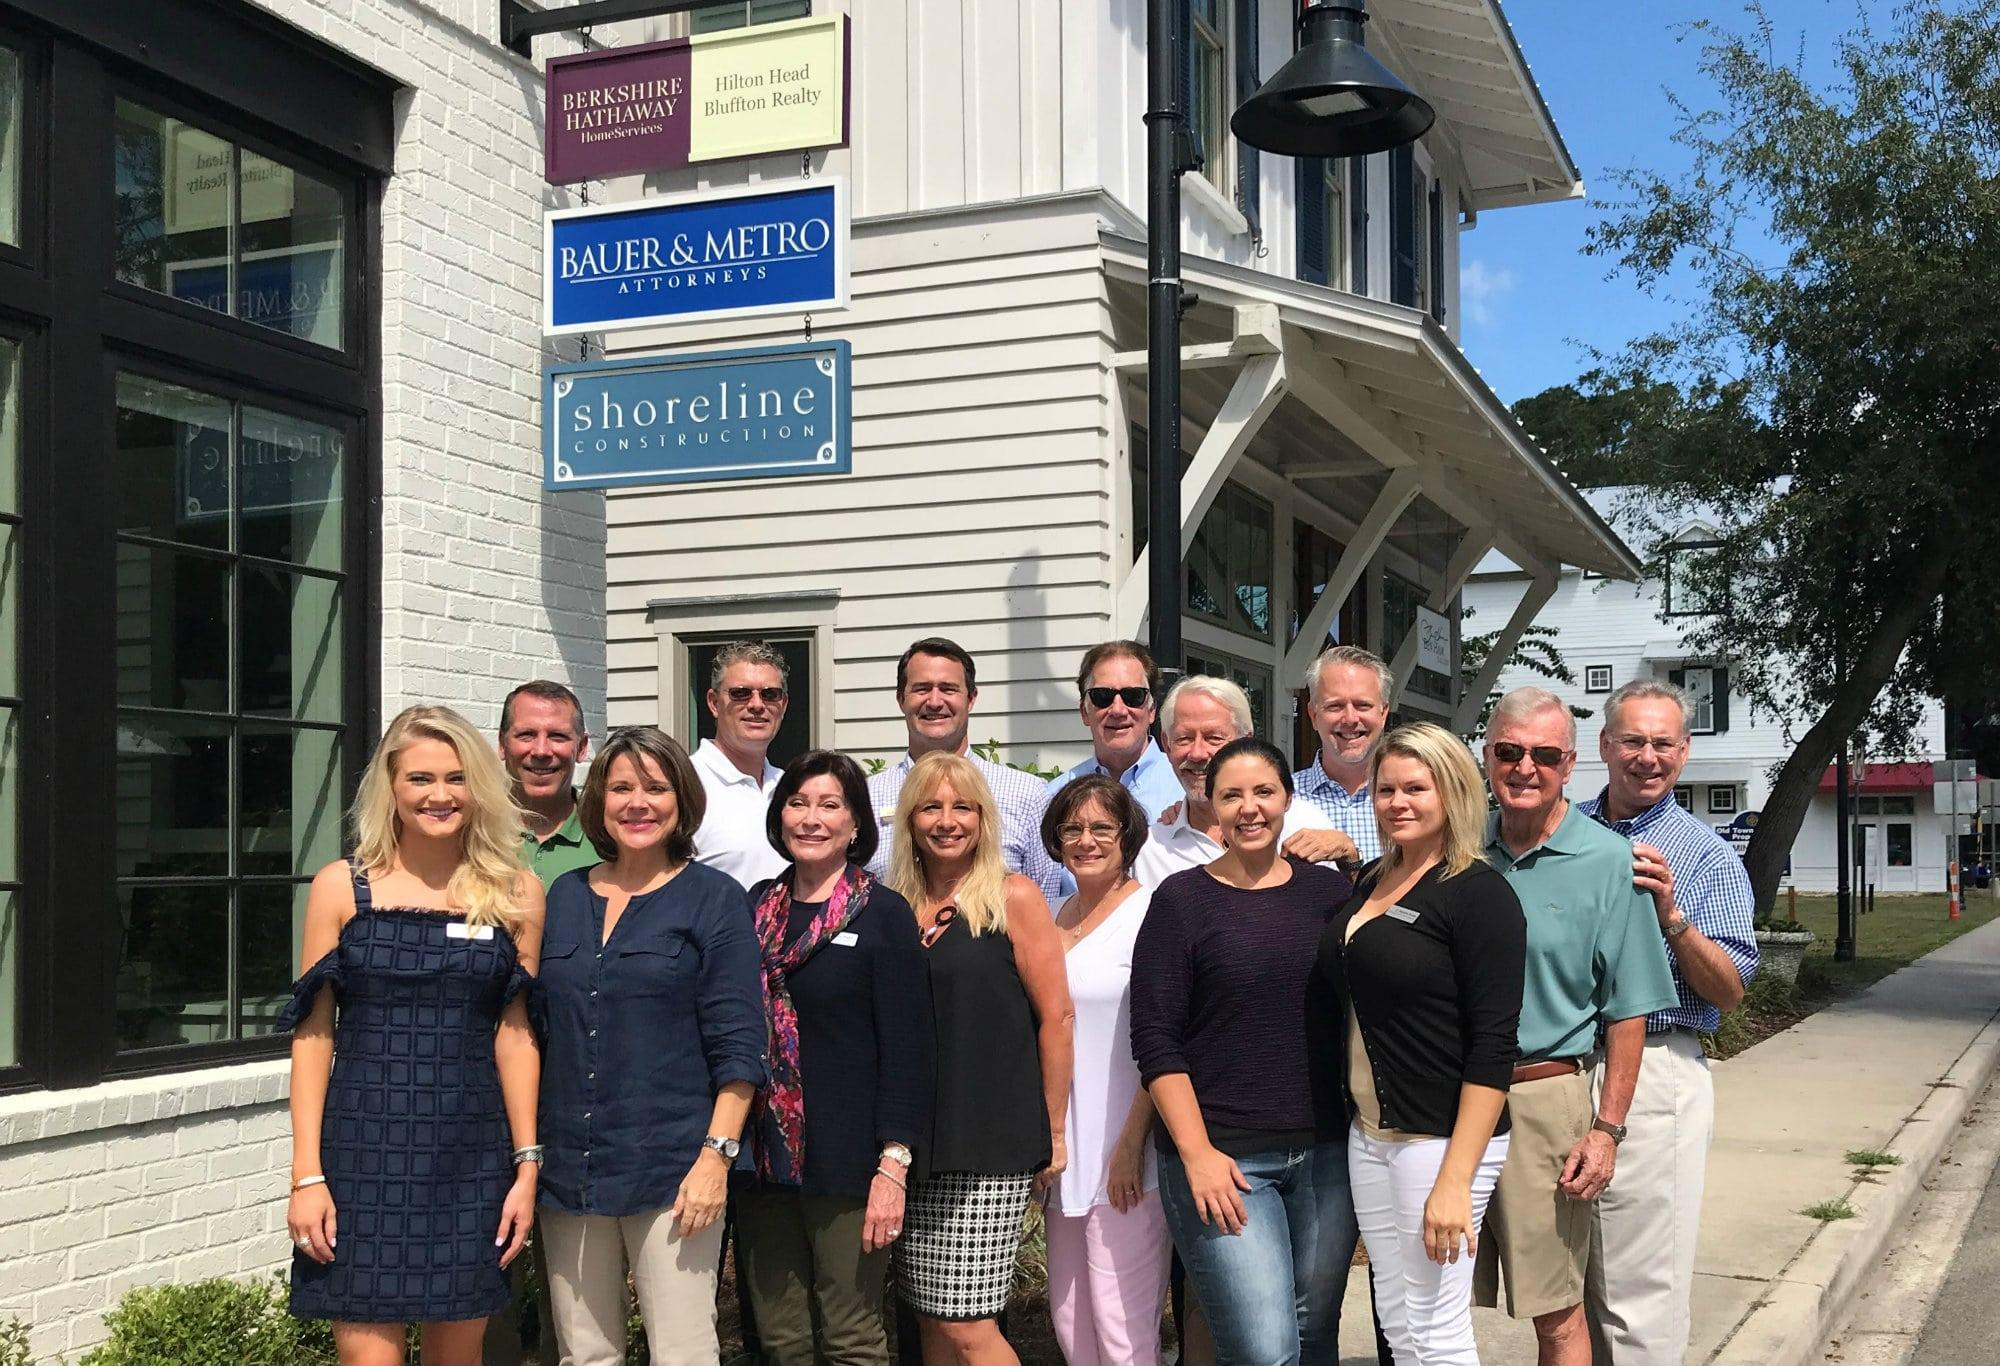 berkshire hathaway homeservices hilton head bluffton realty - bluffton office team